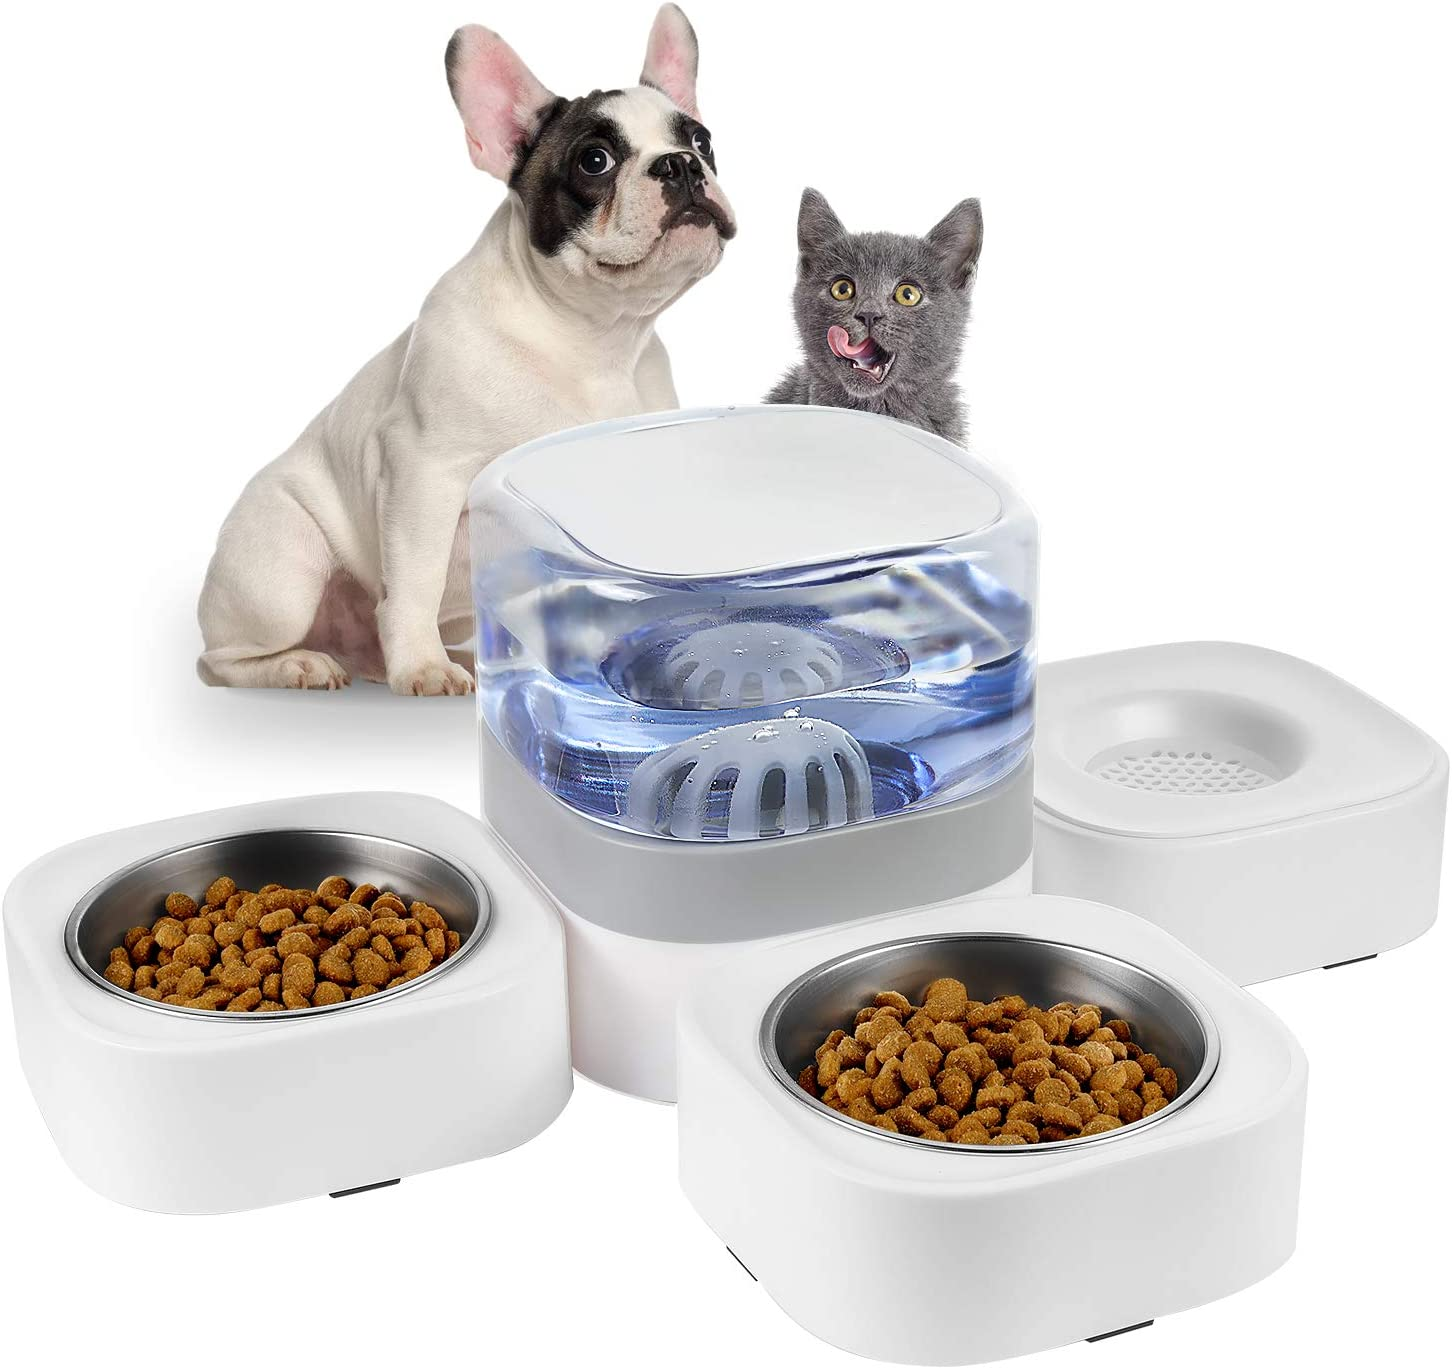 KIMPETS Cat Food and Water Bowl Set, 3-in-1 Detachable Cat Dog Bowl, No Plug in Elevated Cat&Dog Bowl with 63.5 oz, Raised Dog&Cat Bowl with 2 Stainless Steel Cat Bowls, Cat Food Bowls for Indoor Cat